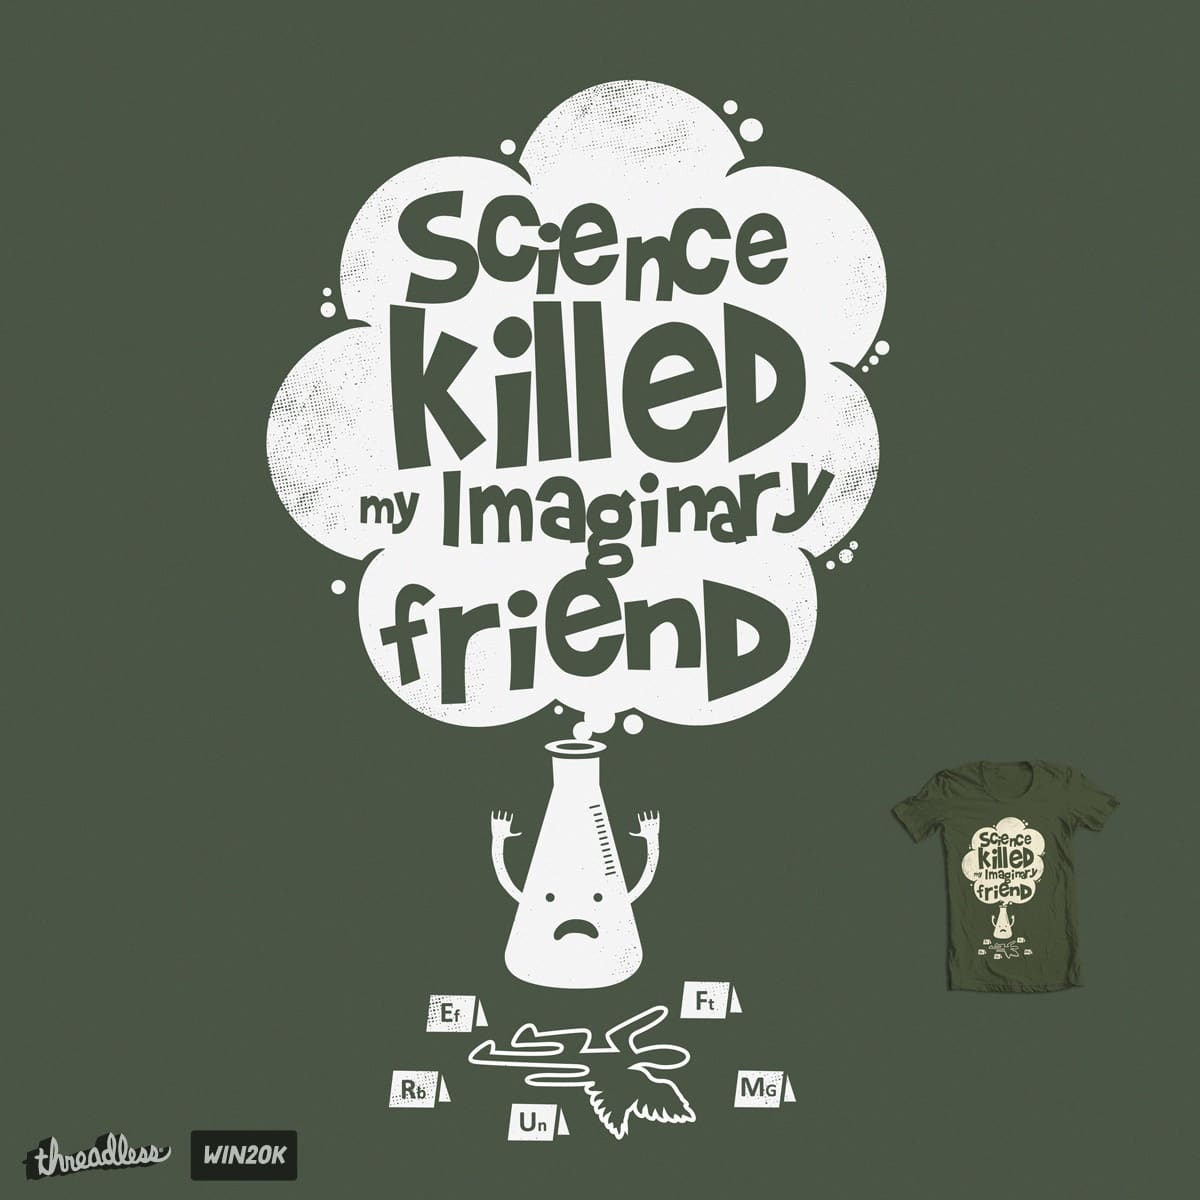 Science Killed My Imaginary Friend by Skate_e1 and krokun on Threadless